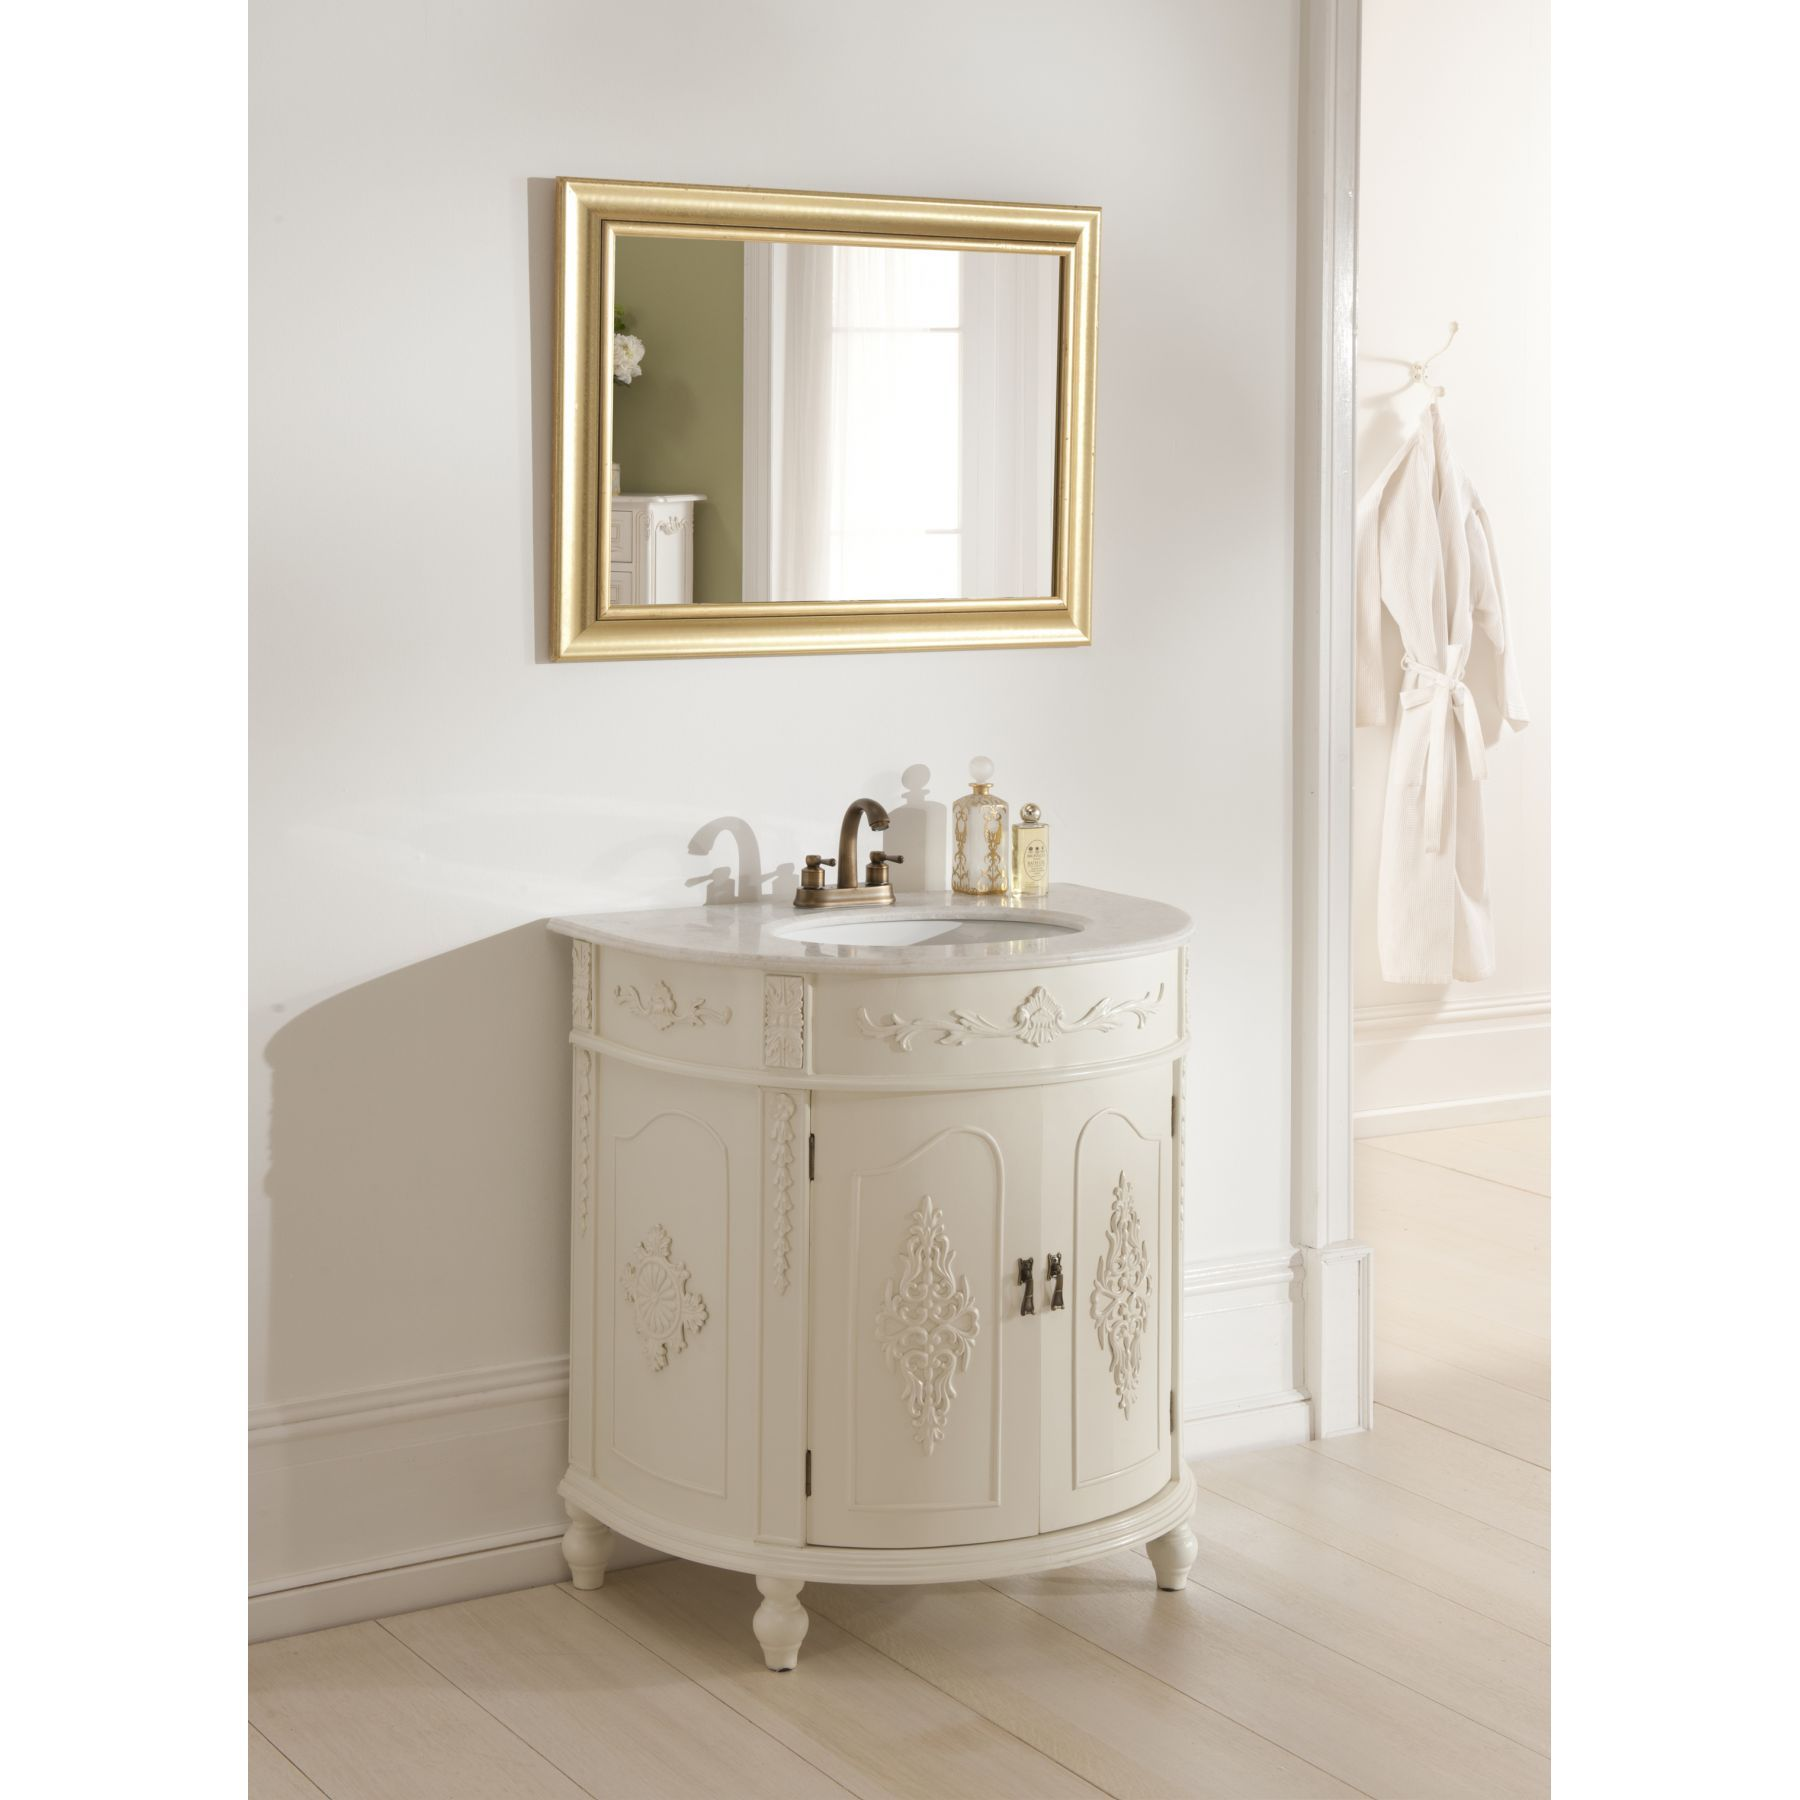 bathroom cabinets vintage style antique style vanity unit bathroom basin 15670